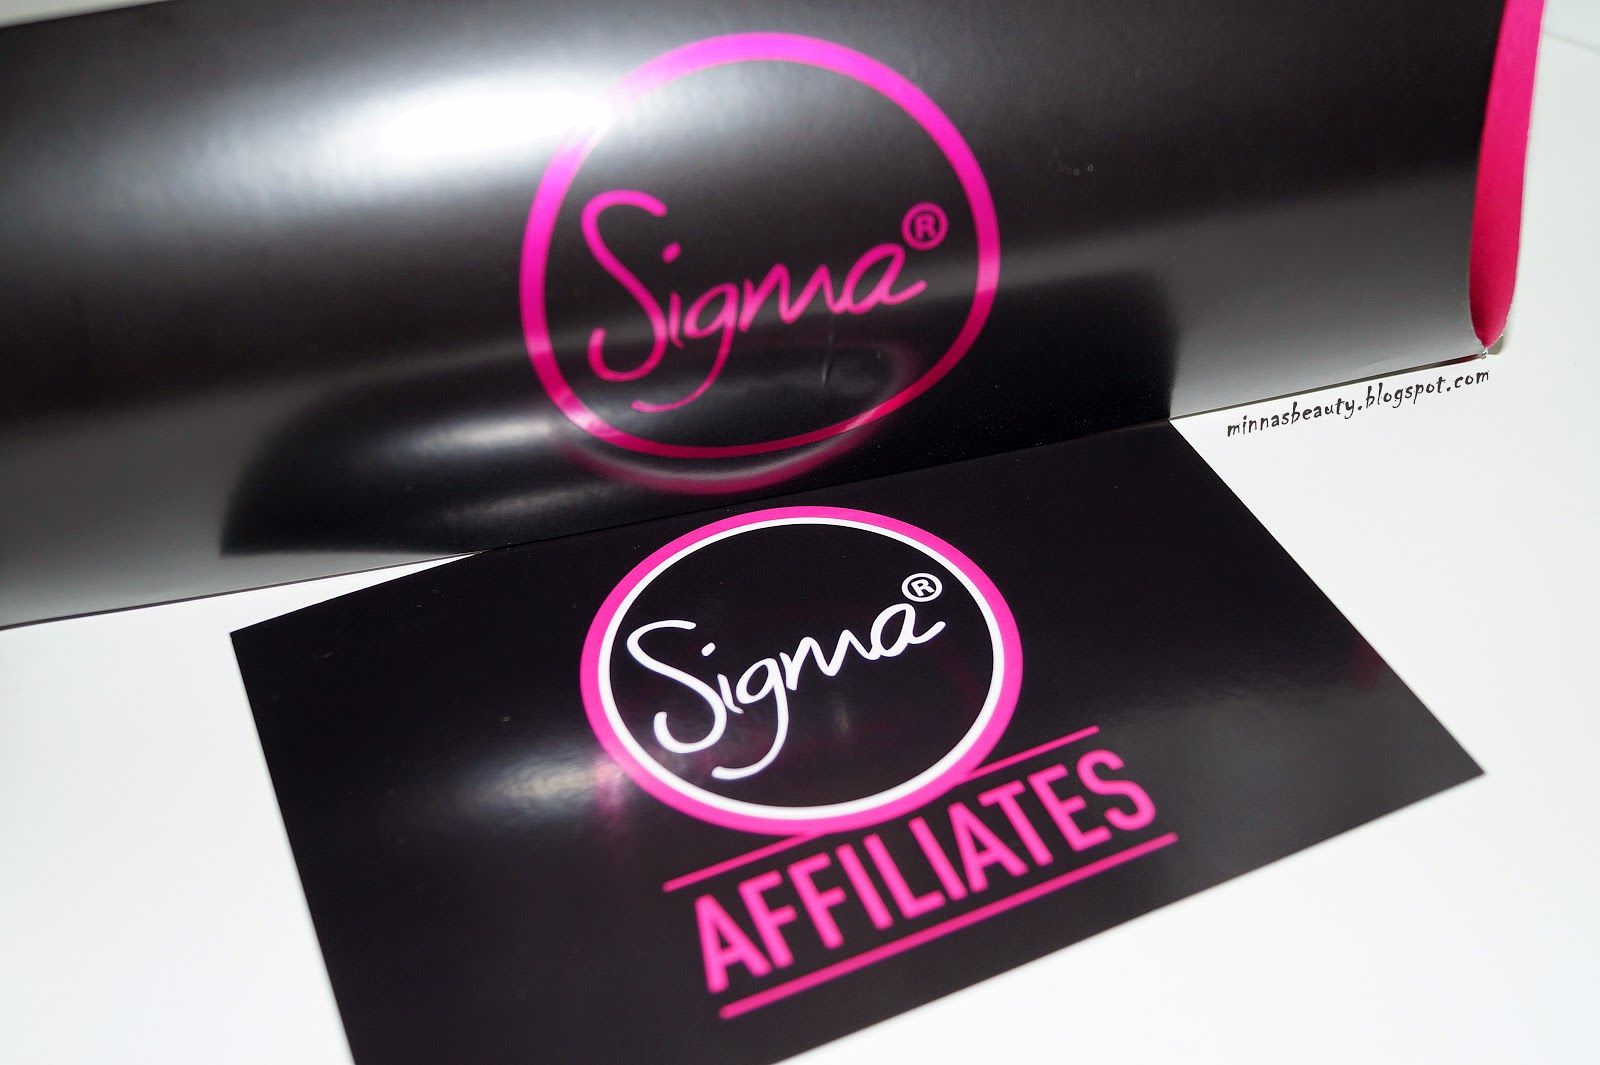 The Sigma Affiliate Network is comprised of the top influencers in the beauty, fashion and affiliate industry worldwide to promote Sigma Beauty. By joining the Sigma Affiliate Network, you will be able to promote Sigma's expansive product line, exclusive offers and earn up to 15% commission on sales.